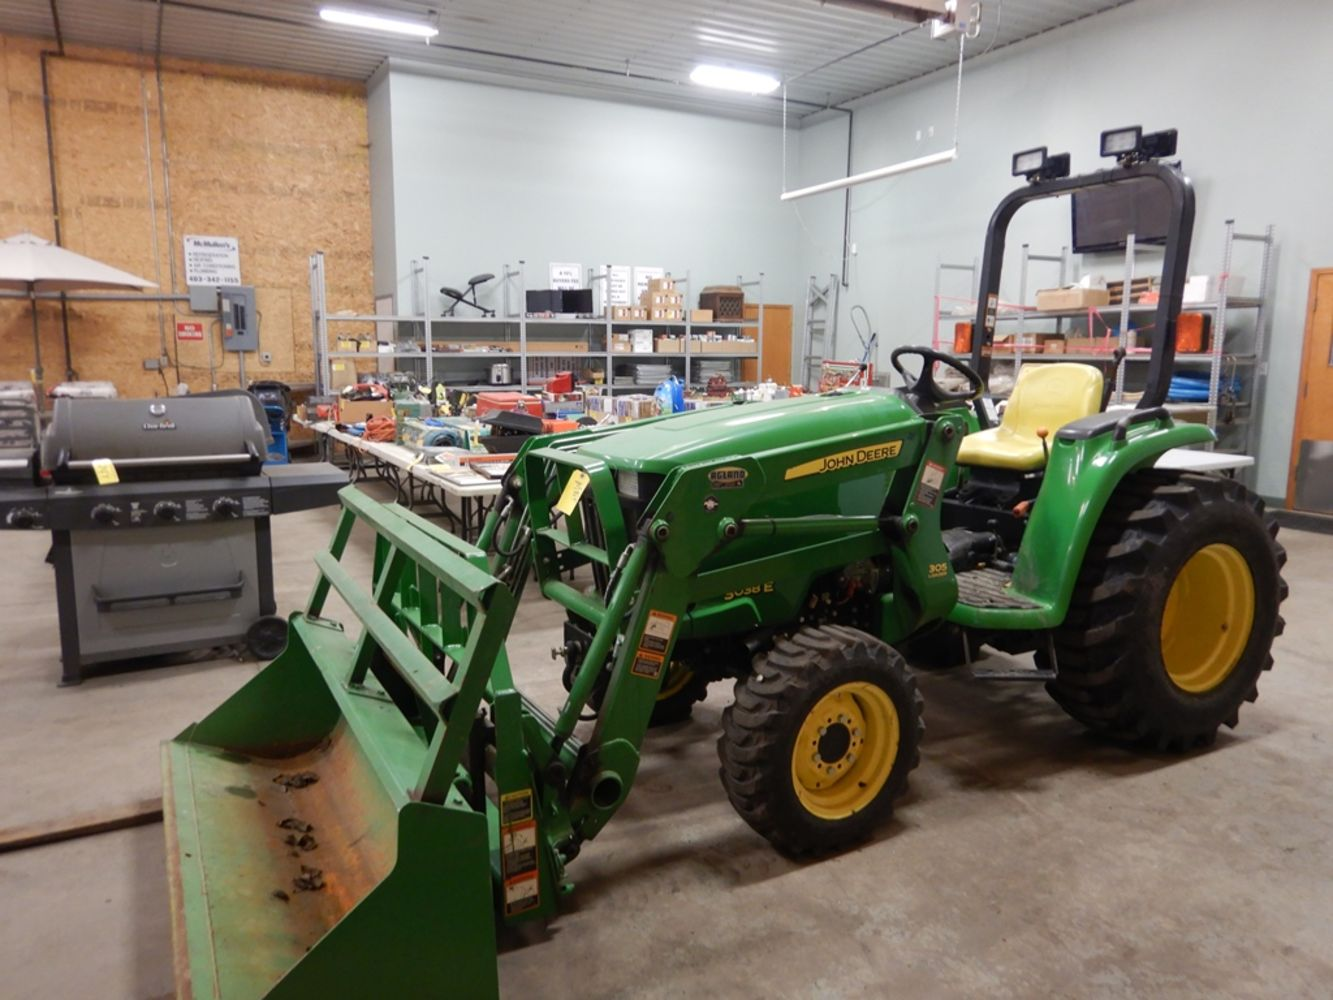 Compact Tractor, RV, Collector HO Trains, Tools, Coveralls